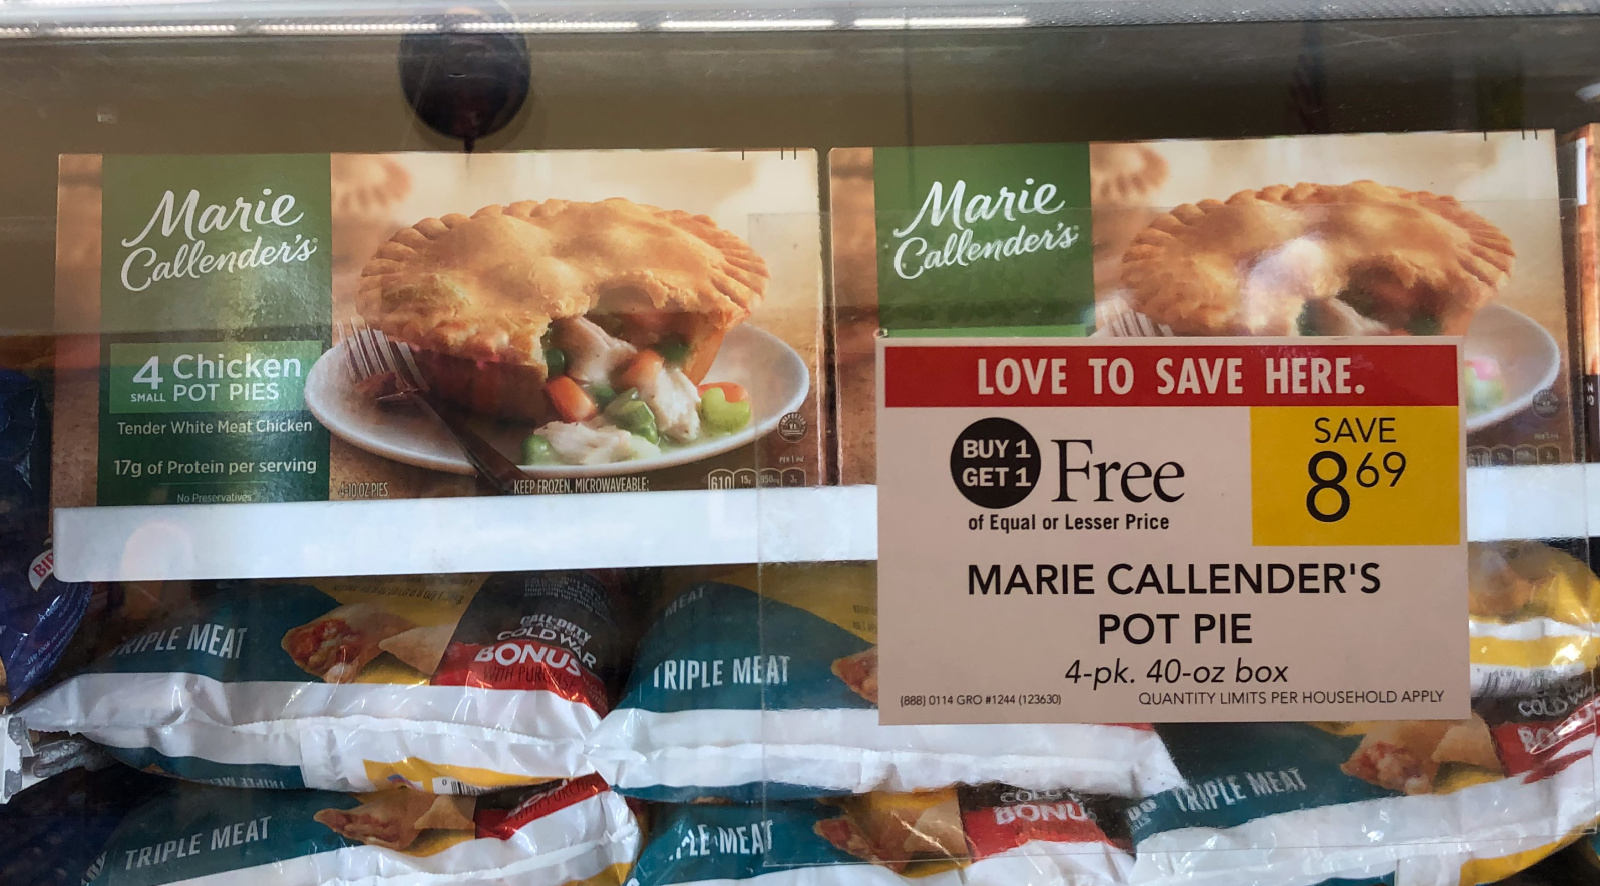 The Frozen Rewards Club Has Returned For 2021 - Earn Up To $50 In Publix Gift Cards! on I Heart Publix 4